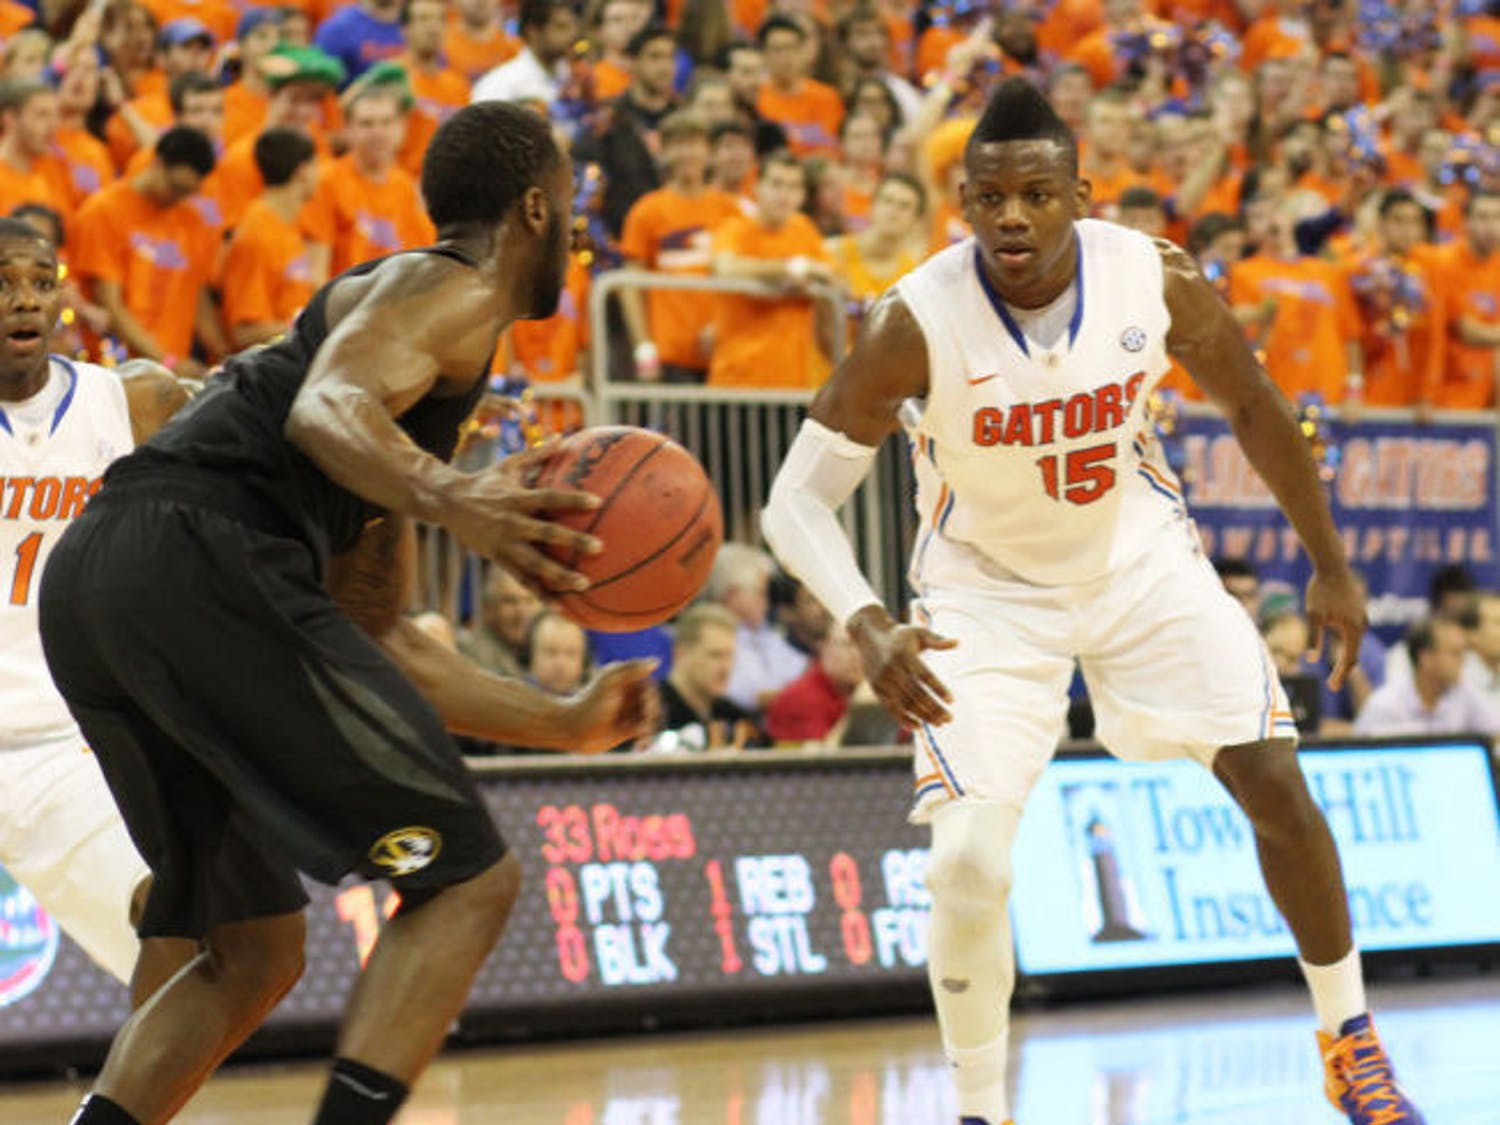 Junior forward Will Yeguete (15) plays defense during Florida's 83-52 victory against Missouri on Saturday in the O'Connell Center. Yeguete will miss 4-6 weeks with bone chips in his right knee.